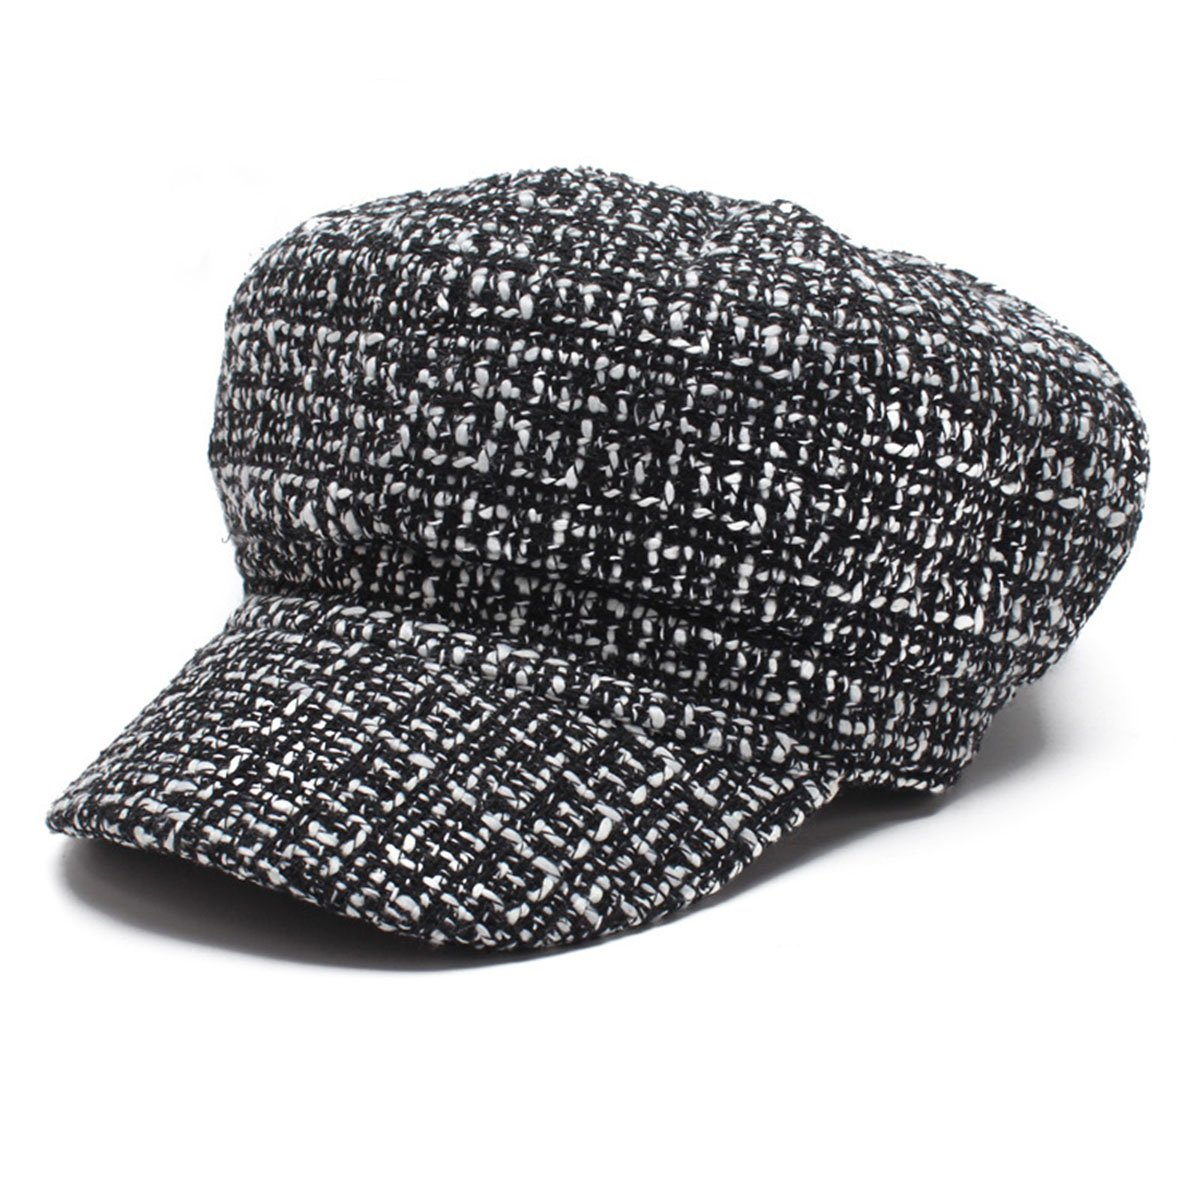 9813a02cfe1 Get Quotations · TTjII Beret Hat Solid Color French Artist Party Knitted  Cap Beanie punk Costume Cabbie Hat Golf